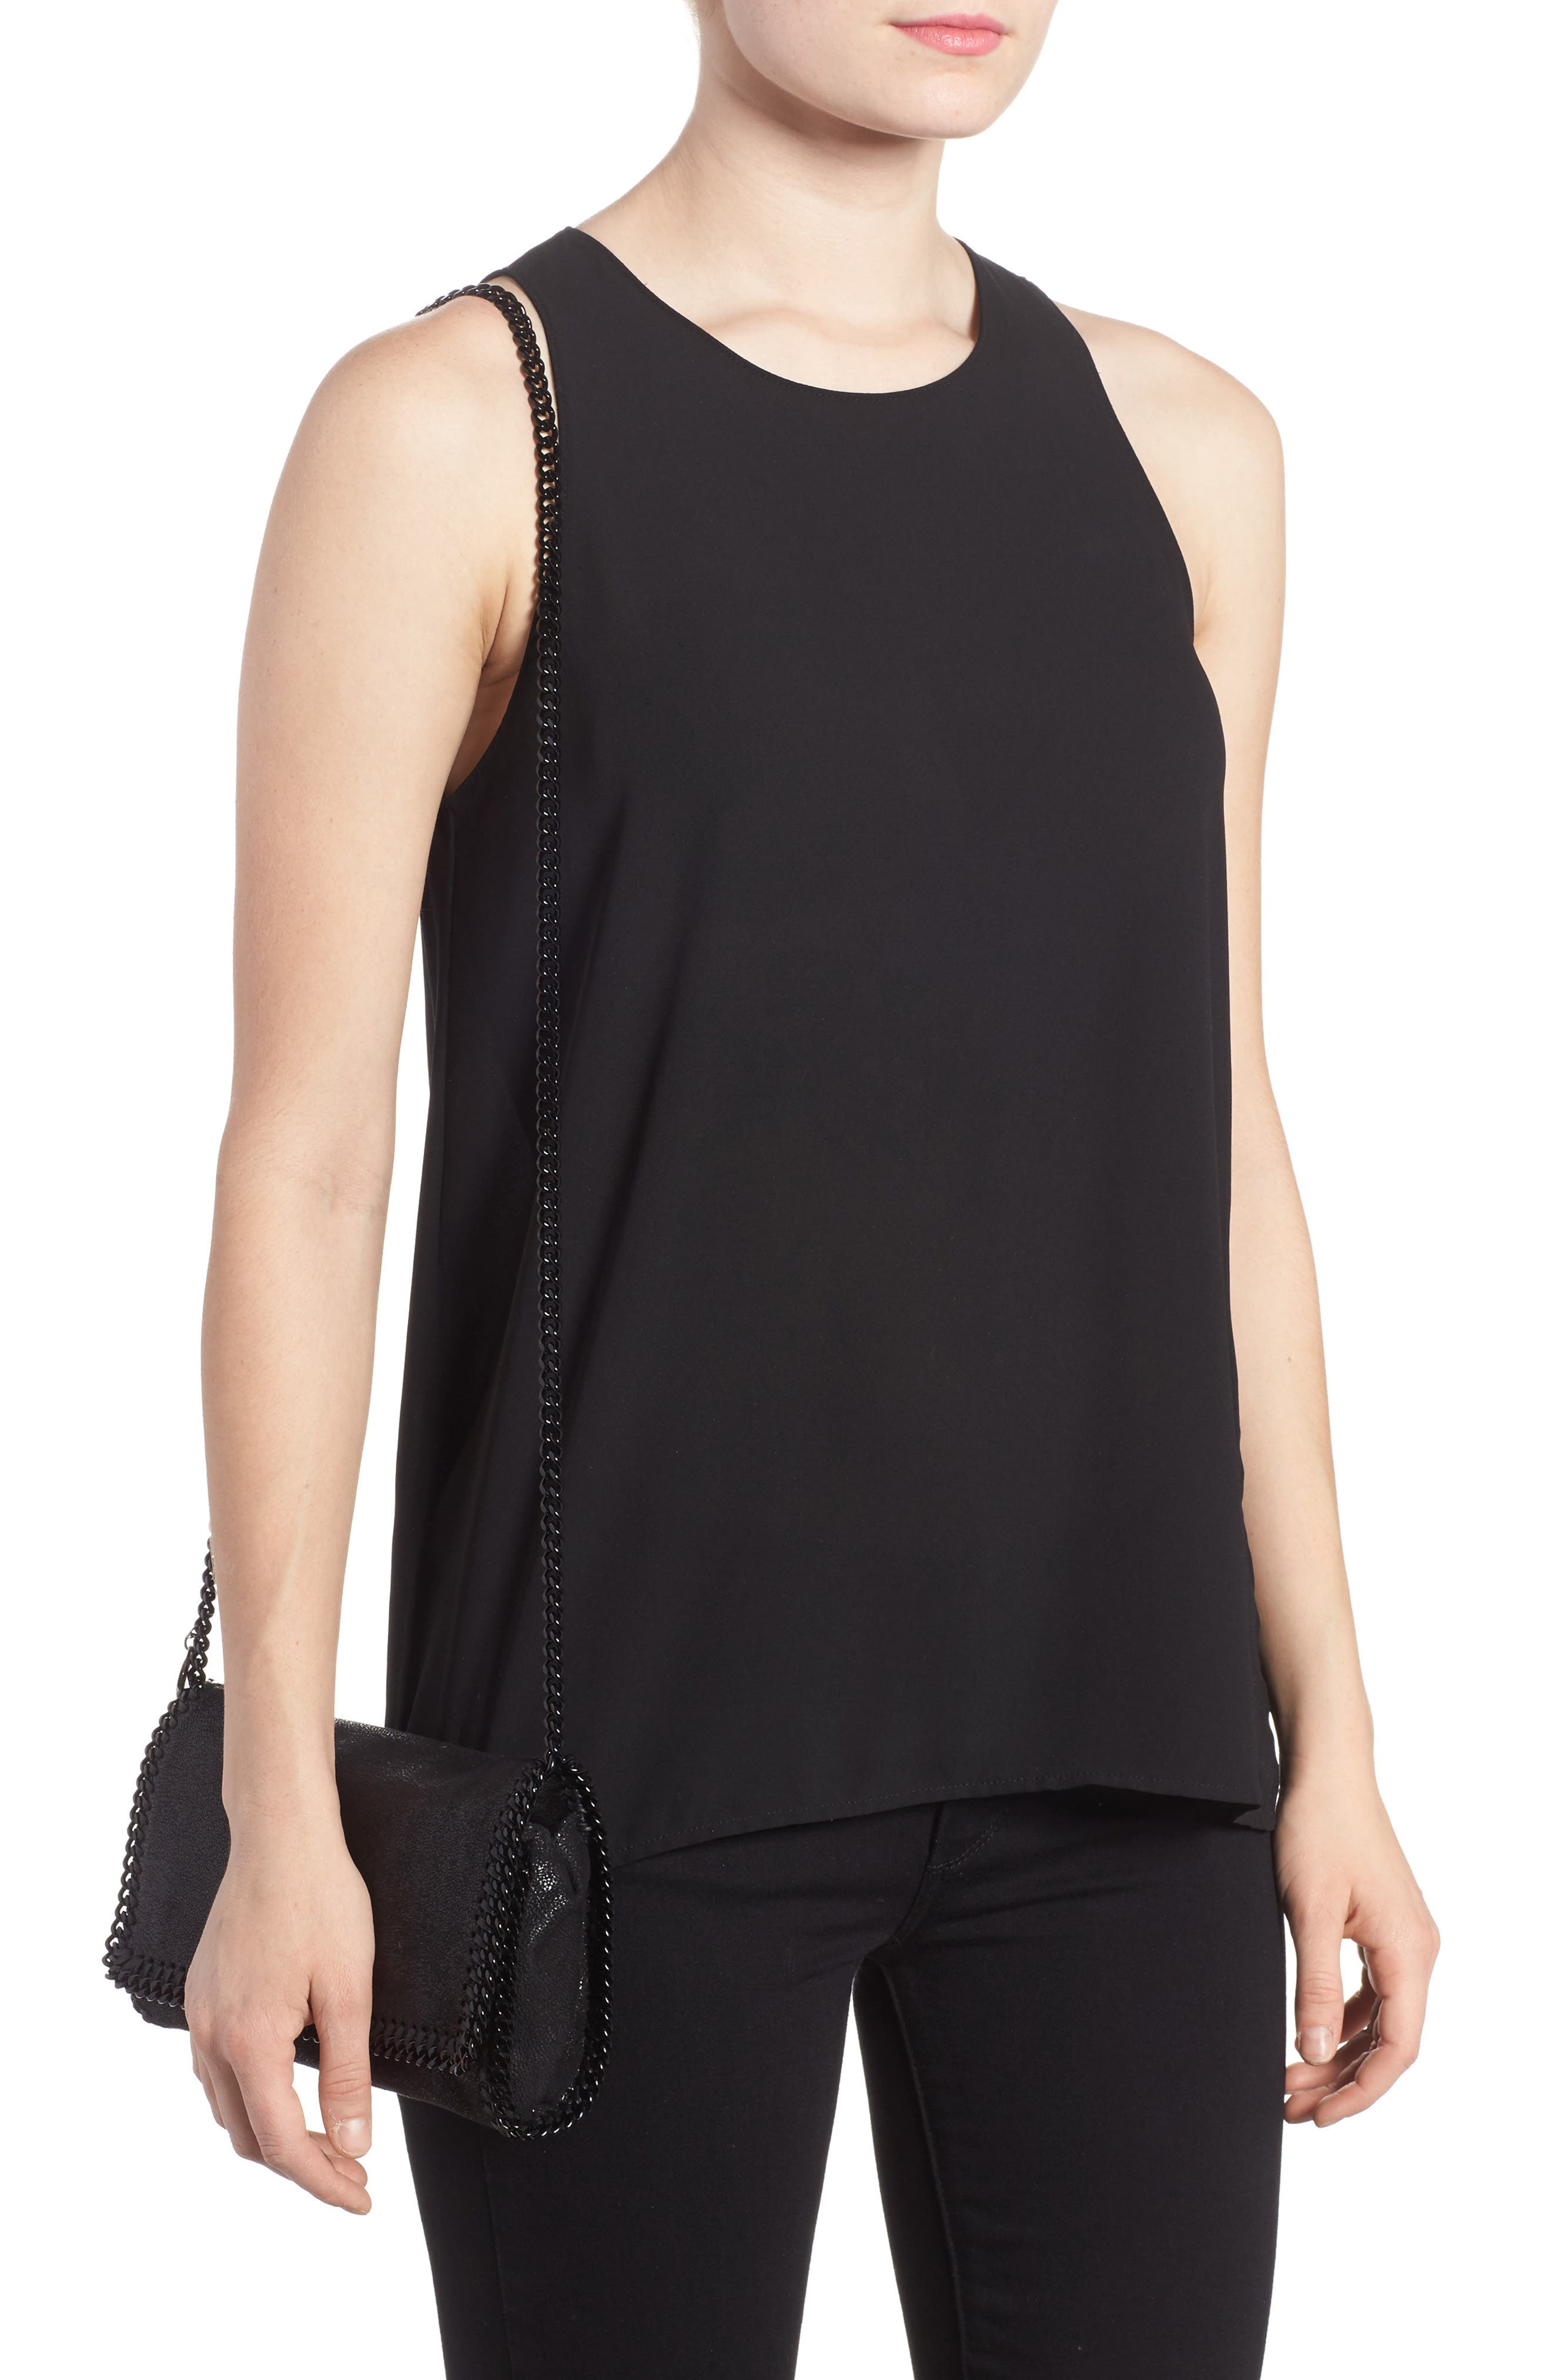 STELLA MCCARTNEY, Falabella Shaggy Deer Faux Leather Clutch, Alternate thumbnail 2, color, BLACK OUT